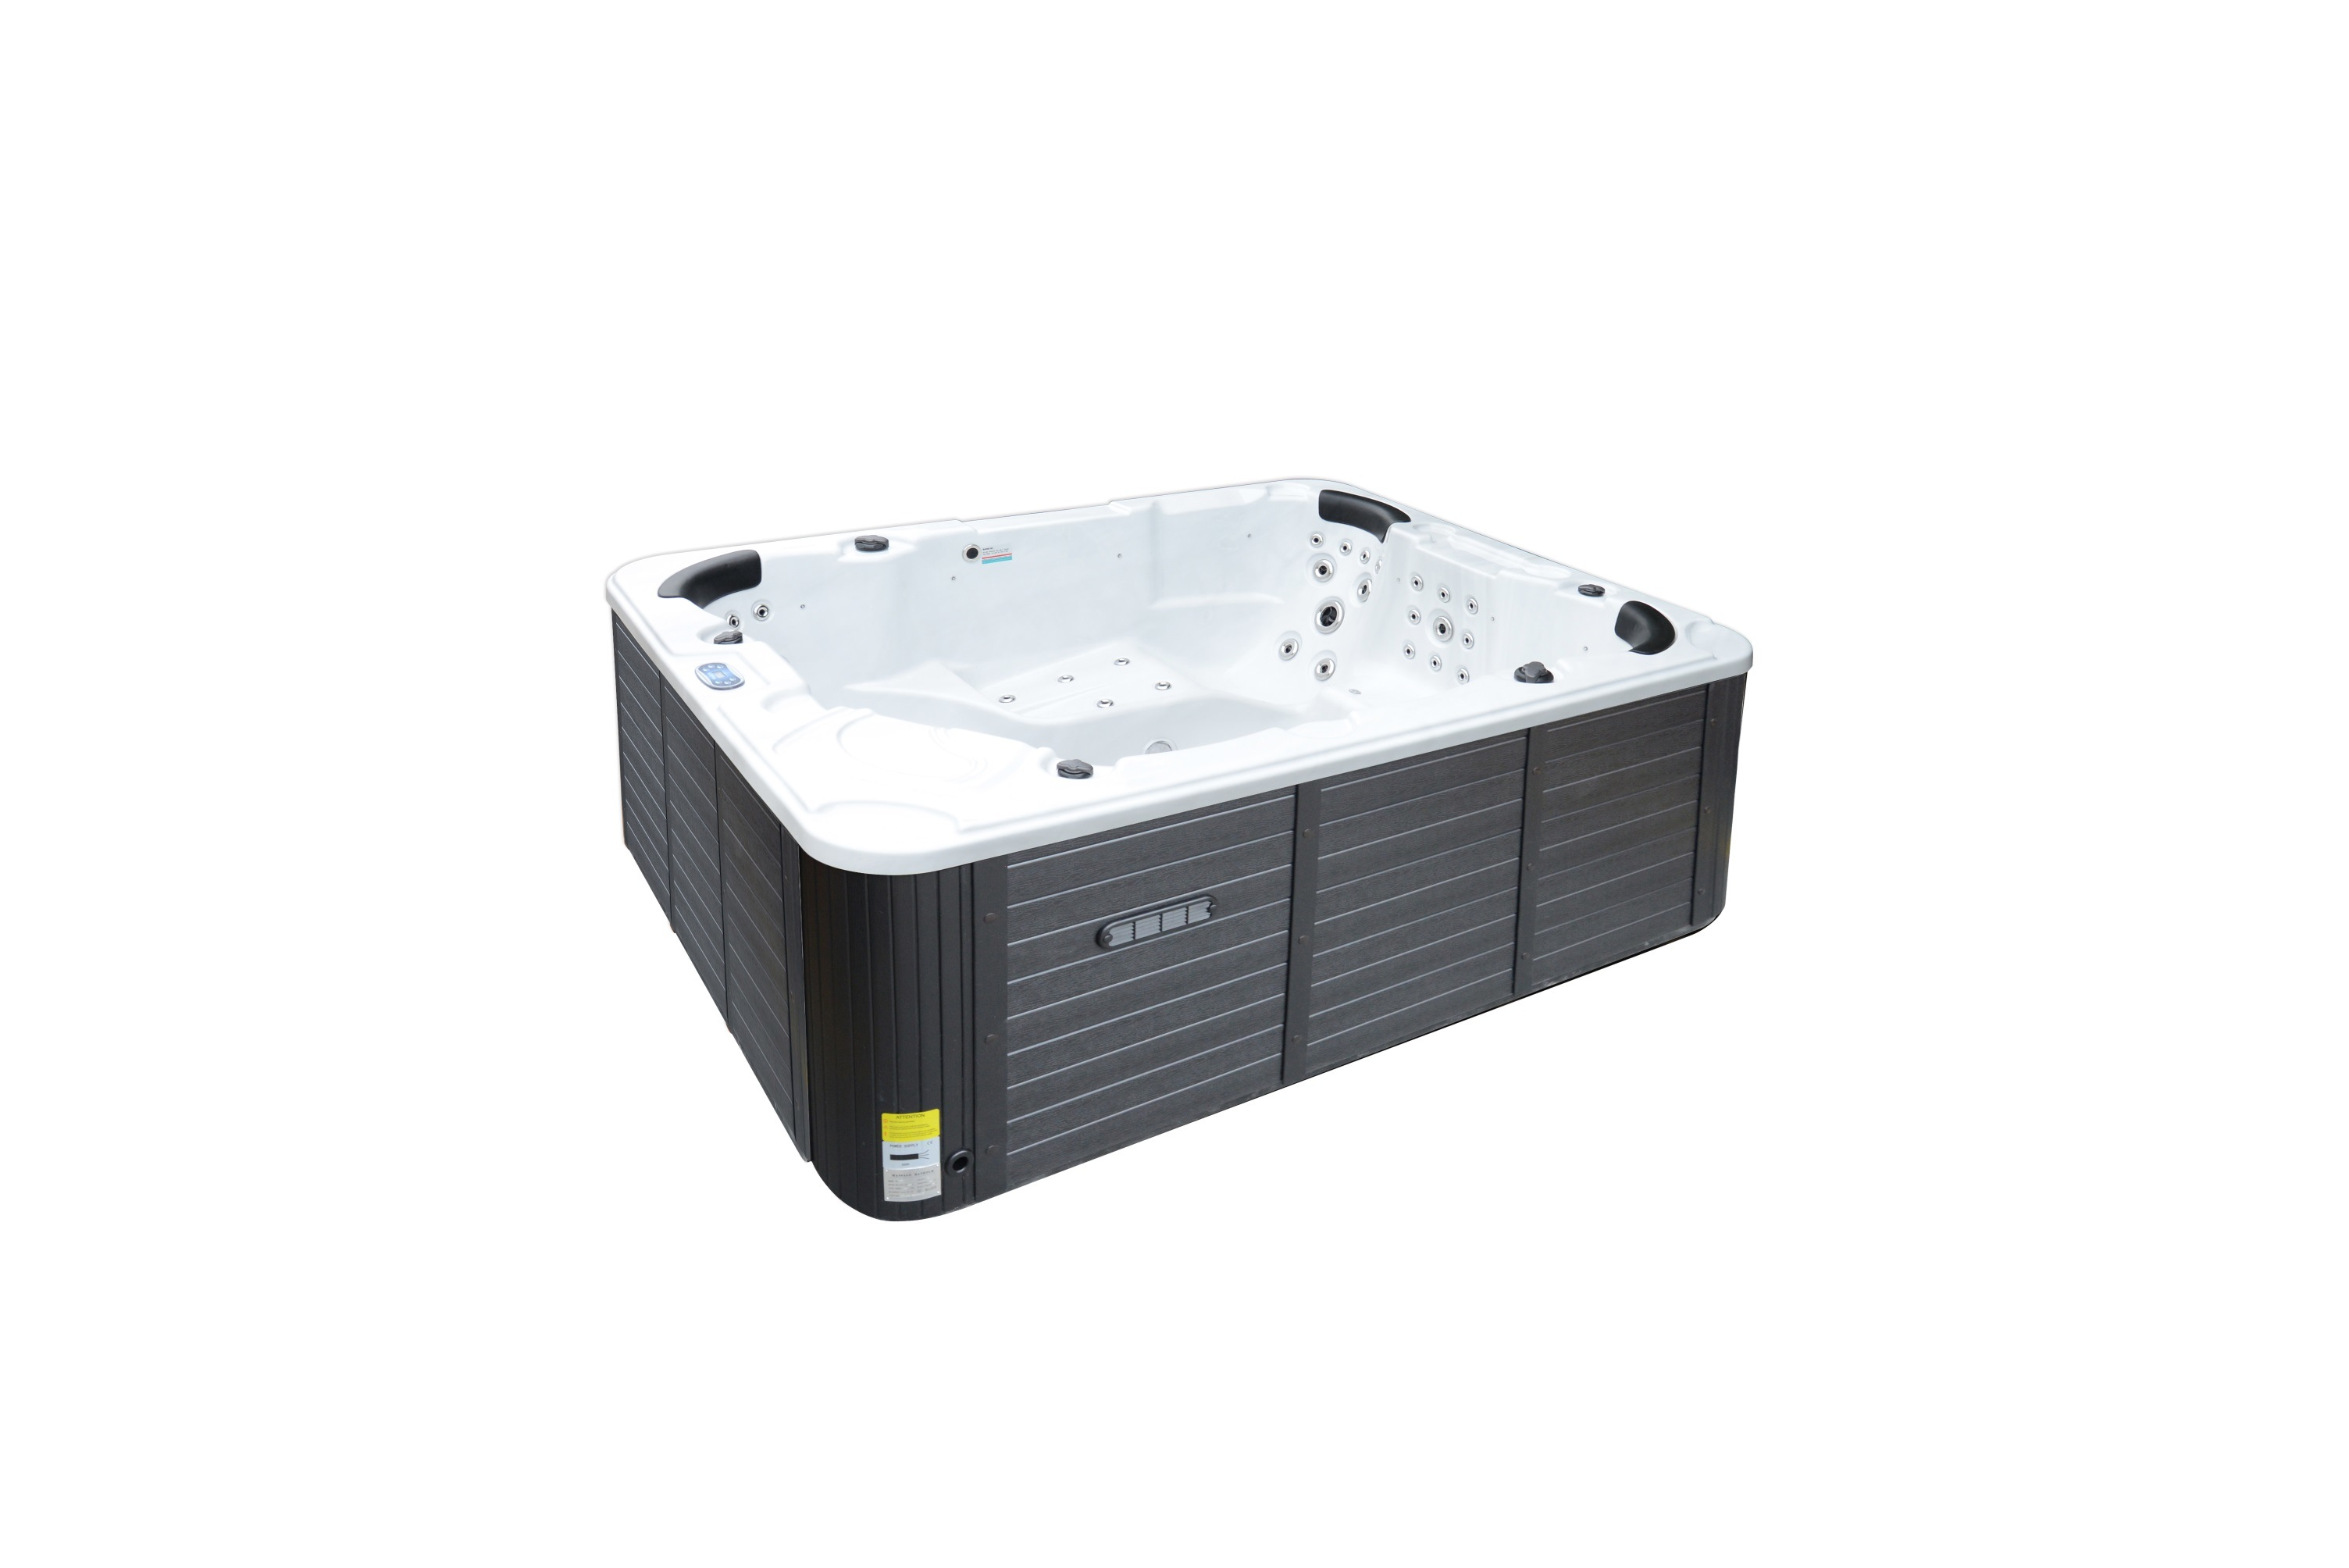 China Corner Drain Location And Acrylic Material 6 Person Deluxe Balboa Outdoor Spa Hot Tub China 7 Person Hot Tub Portable Hot Tub